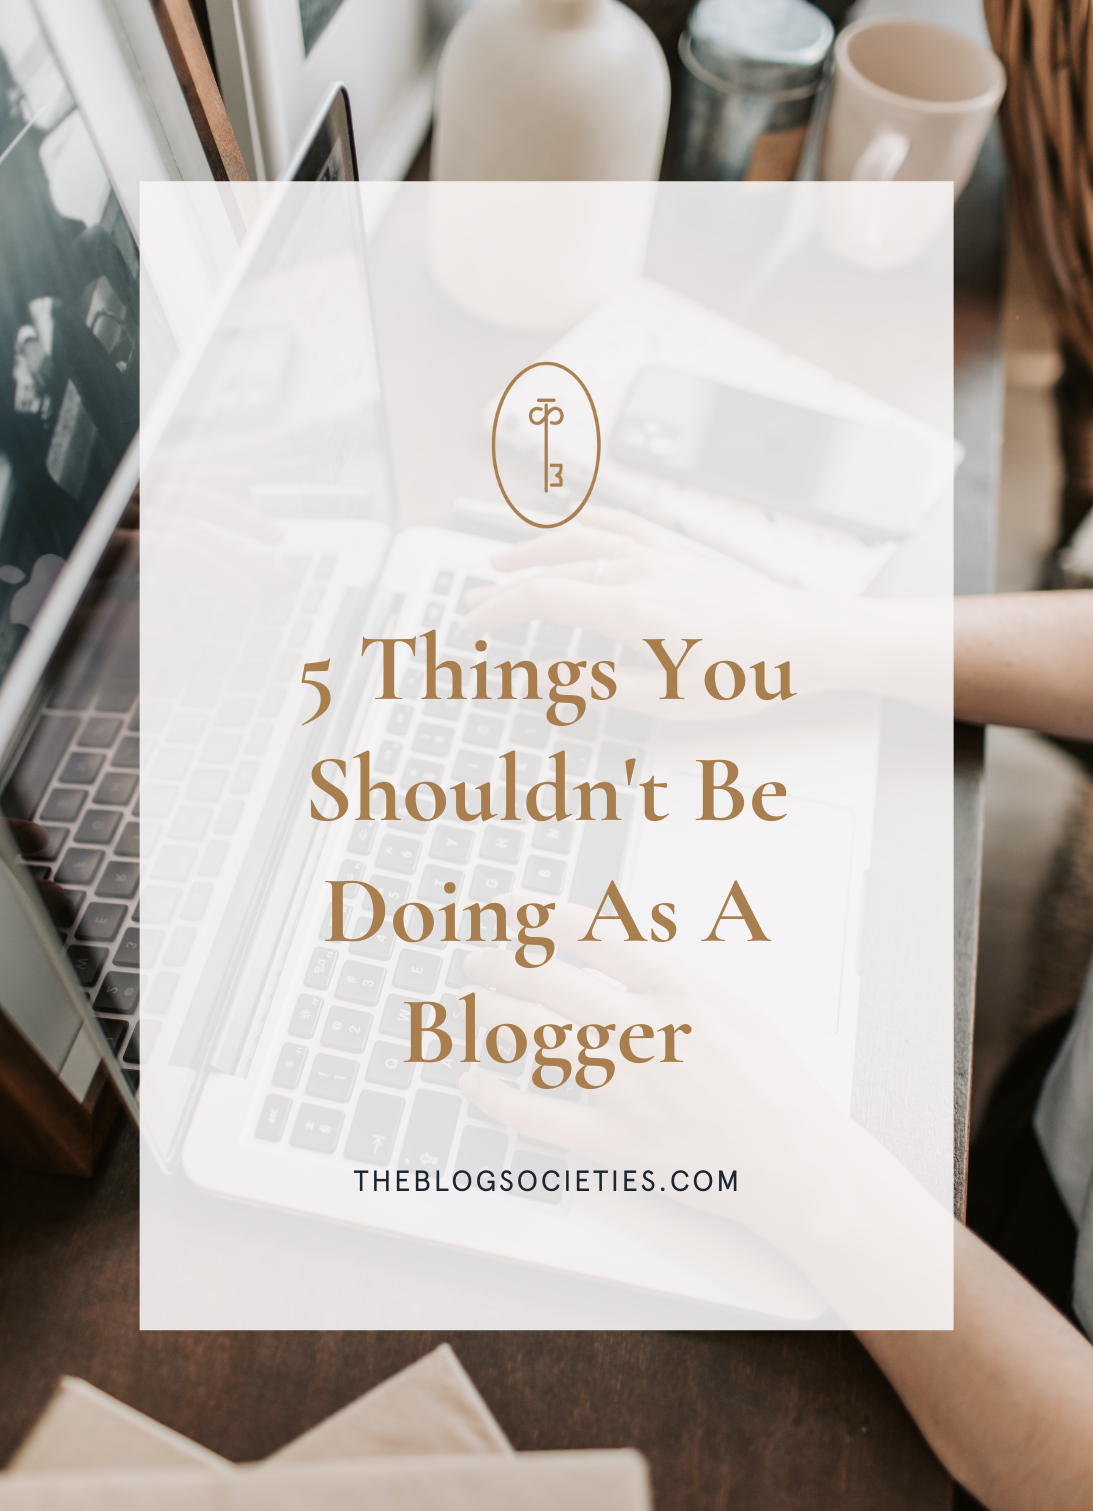 5 Things You Shouldn't Be Doing As A Blogger